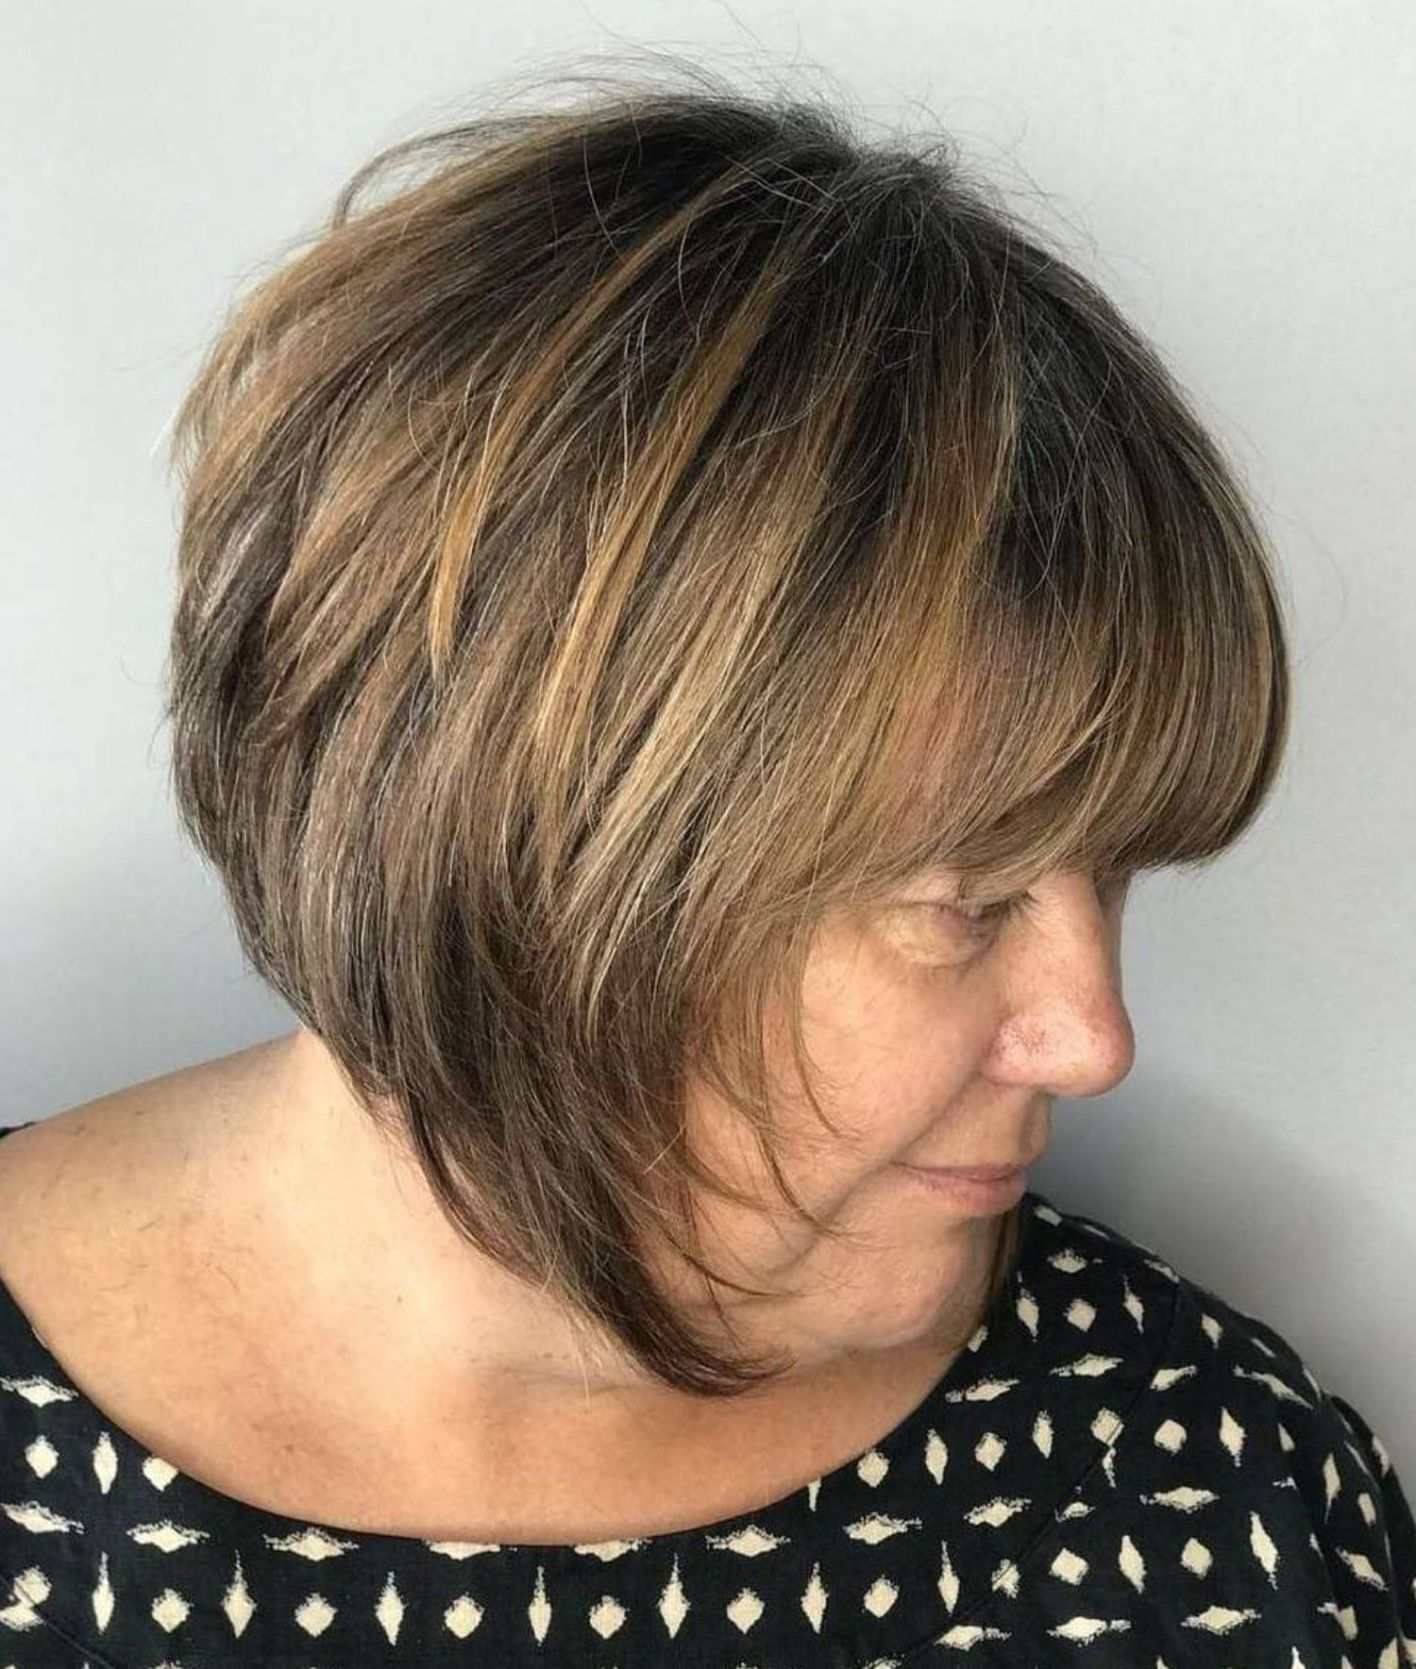 50 Modern Haircuts For Women Over 50 With Extra Zing In